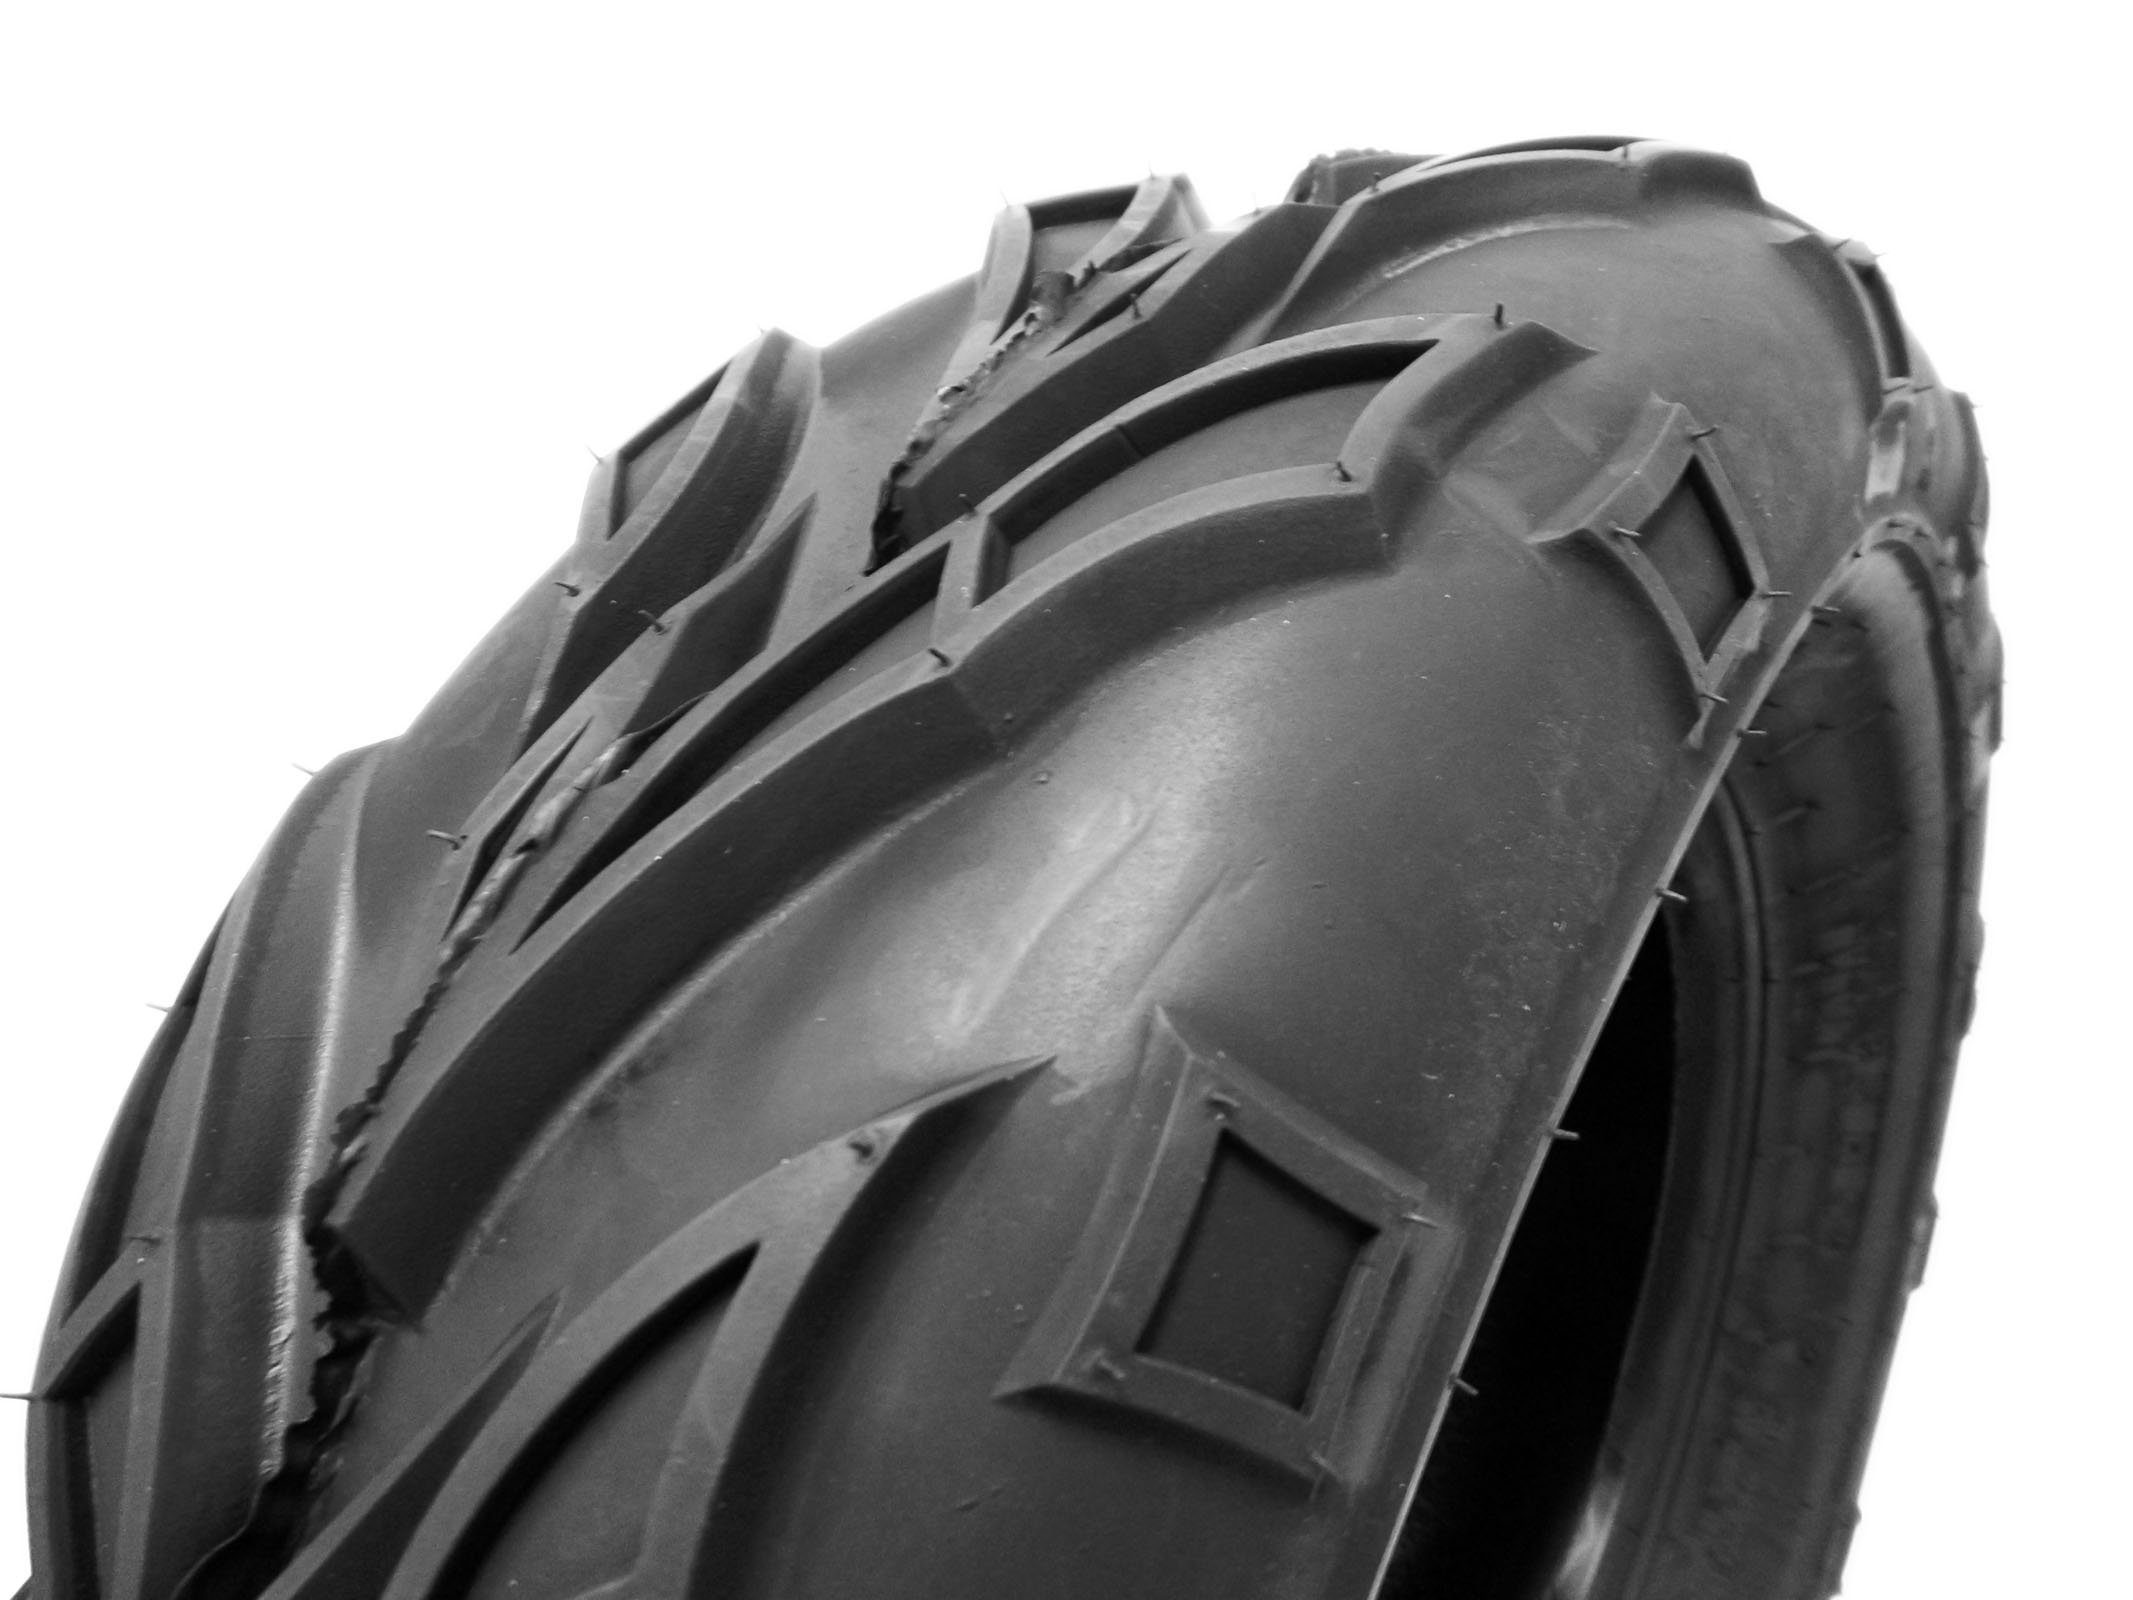 SET OF TWO: ATV Tubeless Tire 21x7-10 (175/80-10) Front or Rear All Terrain ATV UTV Go Kart - P133 by MMG (Image #4)